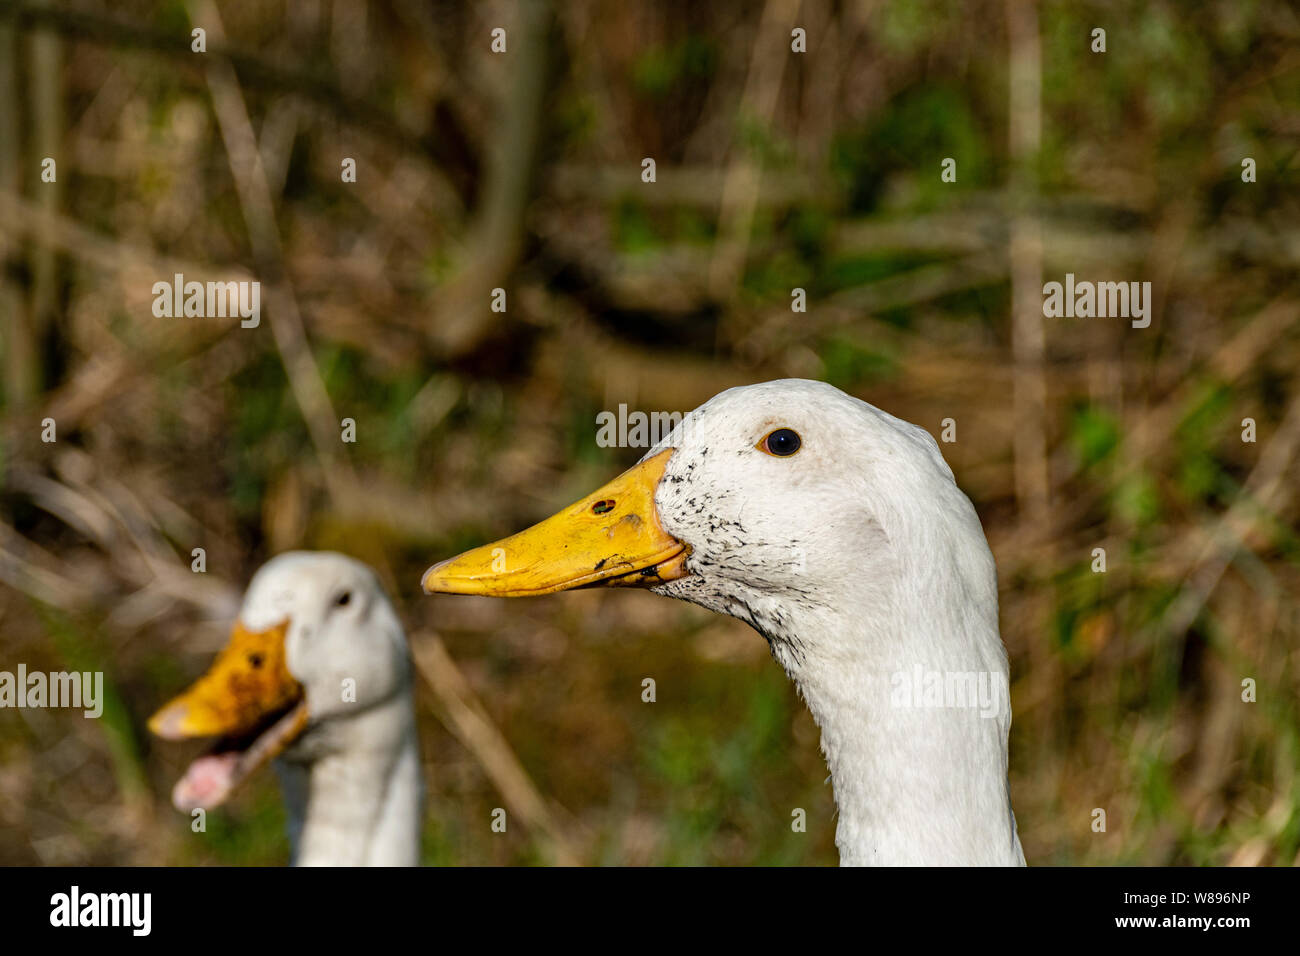 Mucky ducks. Portrait of white ducks with swamp mud around beaks Stock Photo